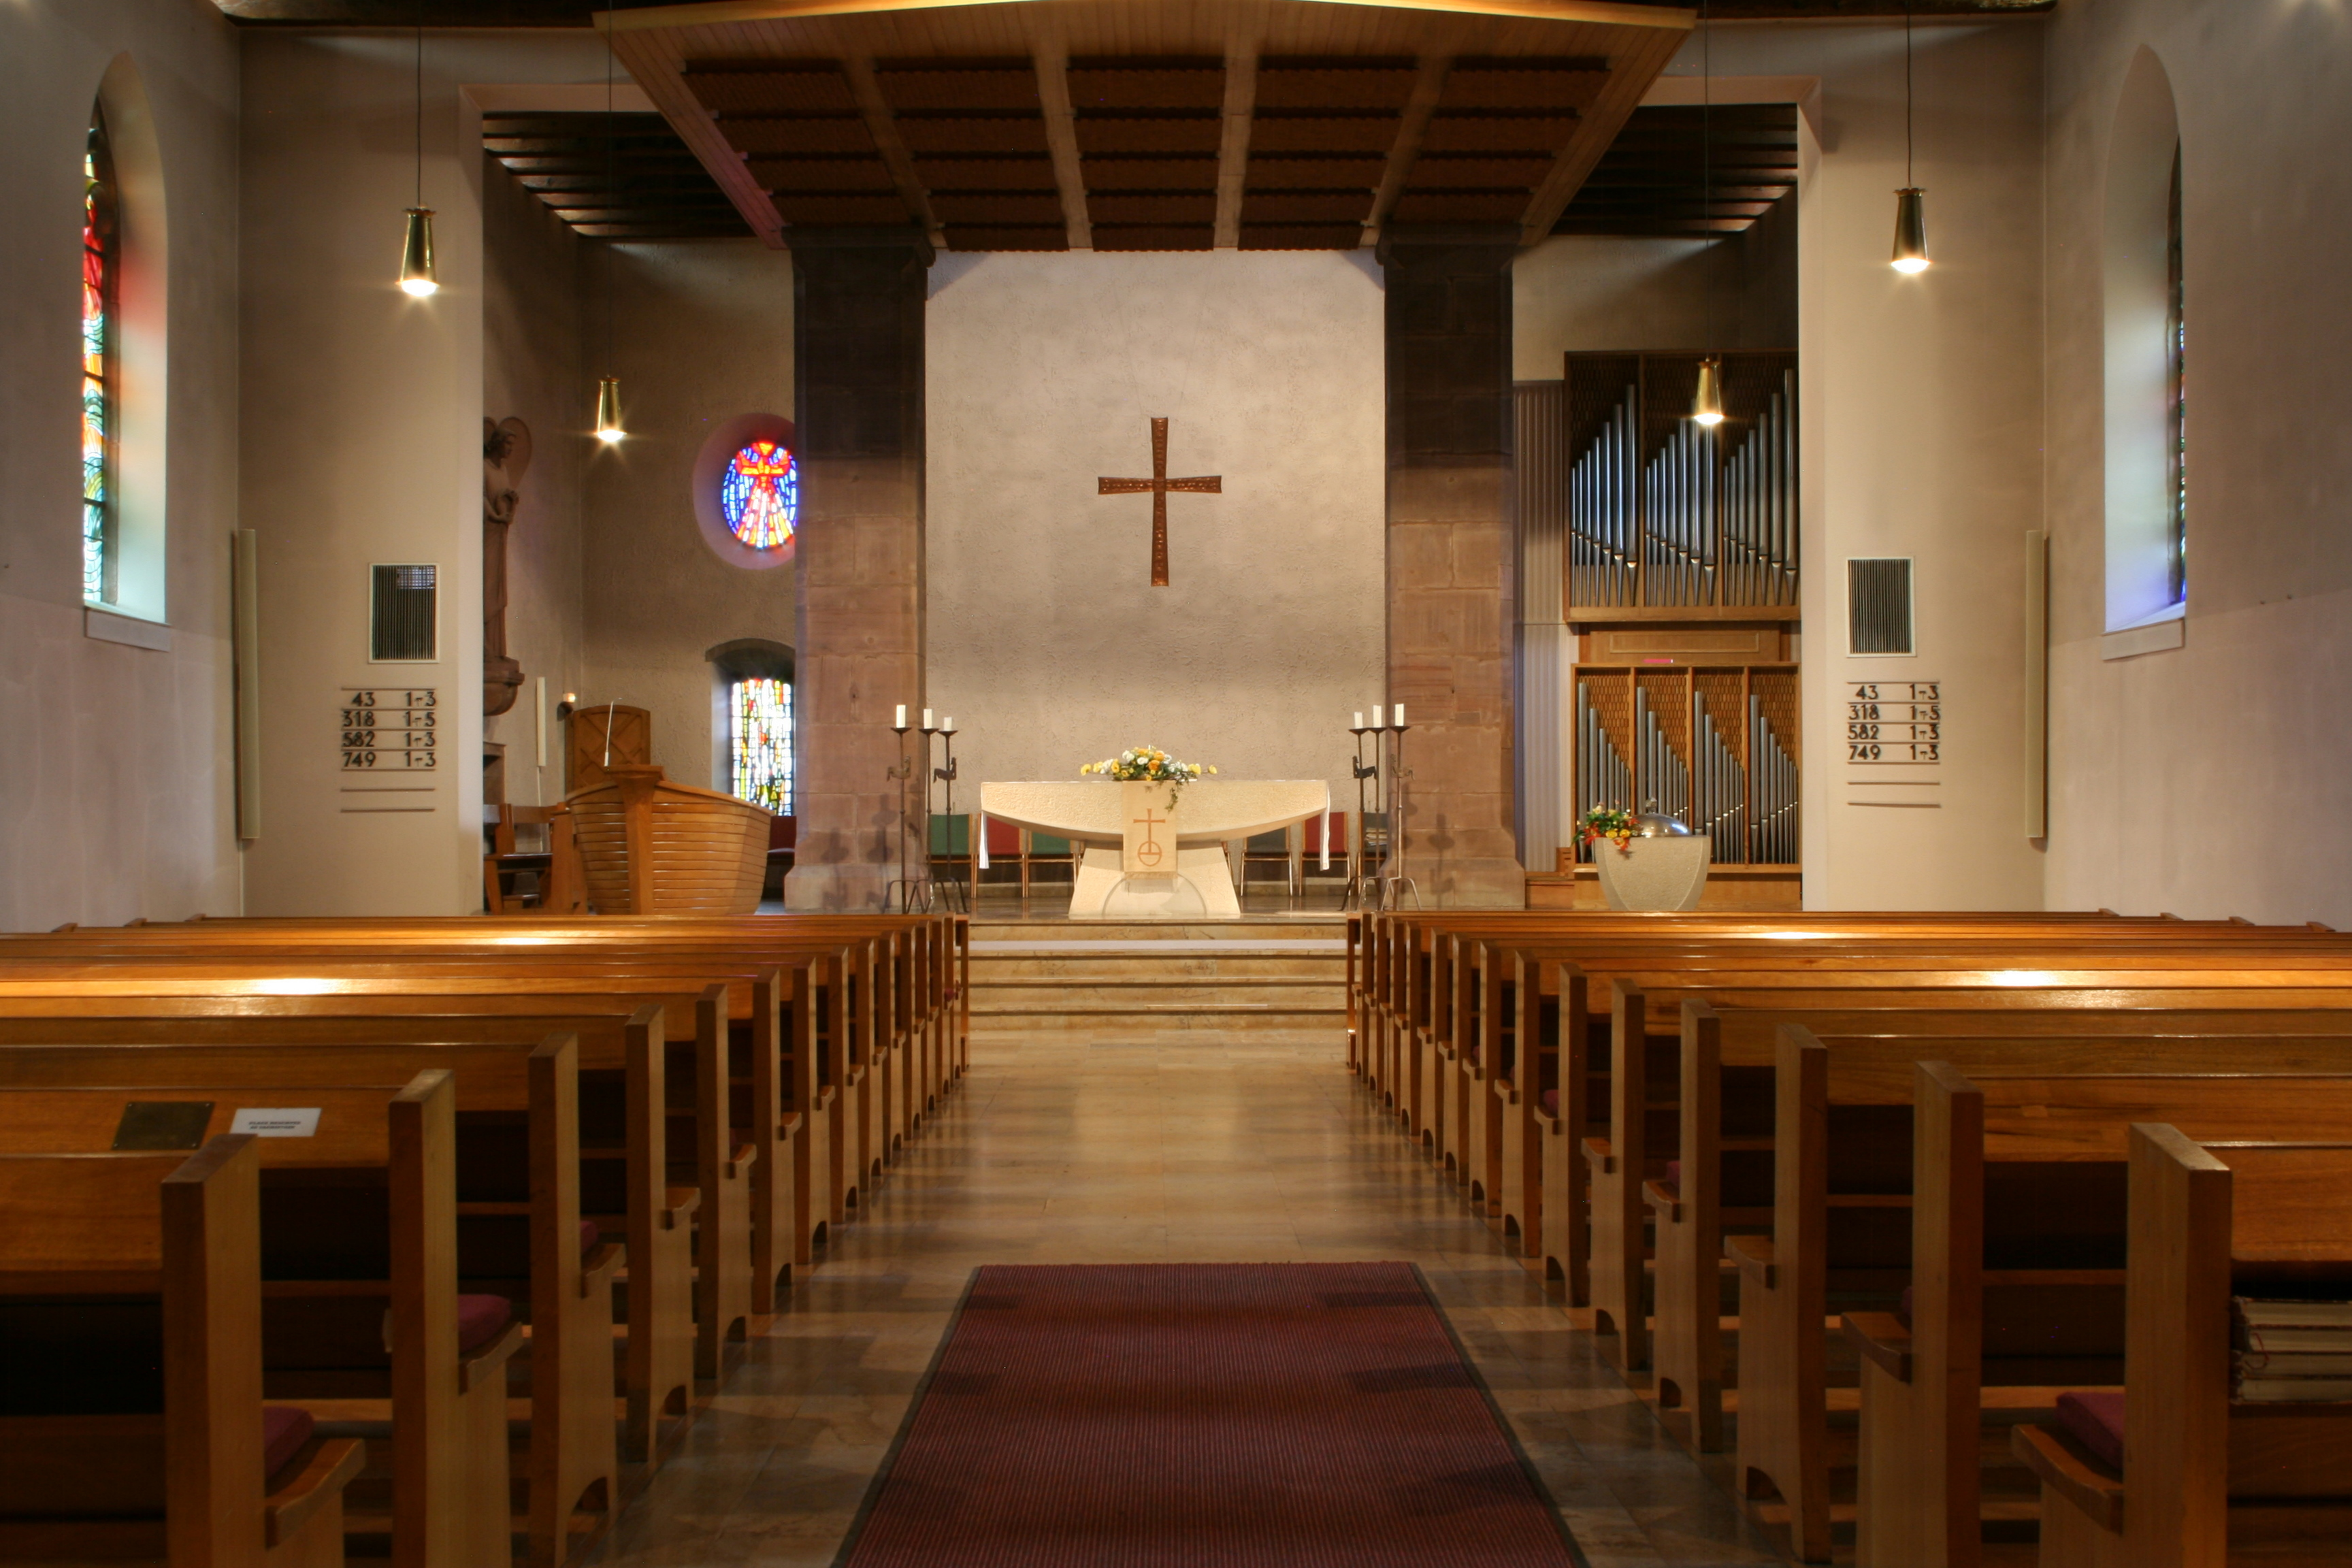 the lutheran church a protestant christian Largest churches among evangelical and conservative protestant denominations in the united states in 2010, by number of adherents largest evangelical and conserative protestant churches in the us.